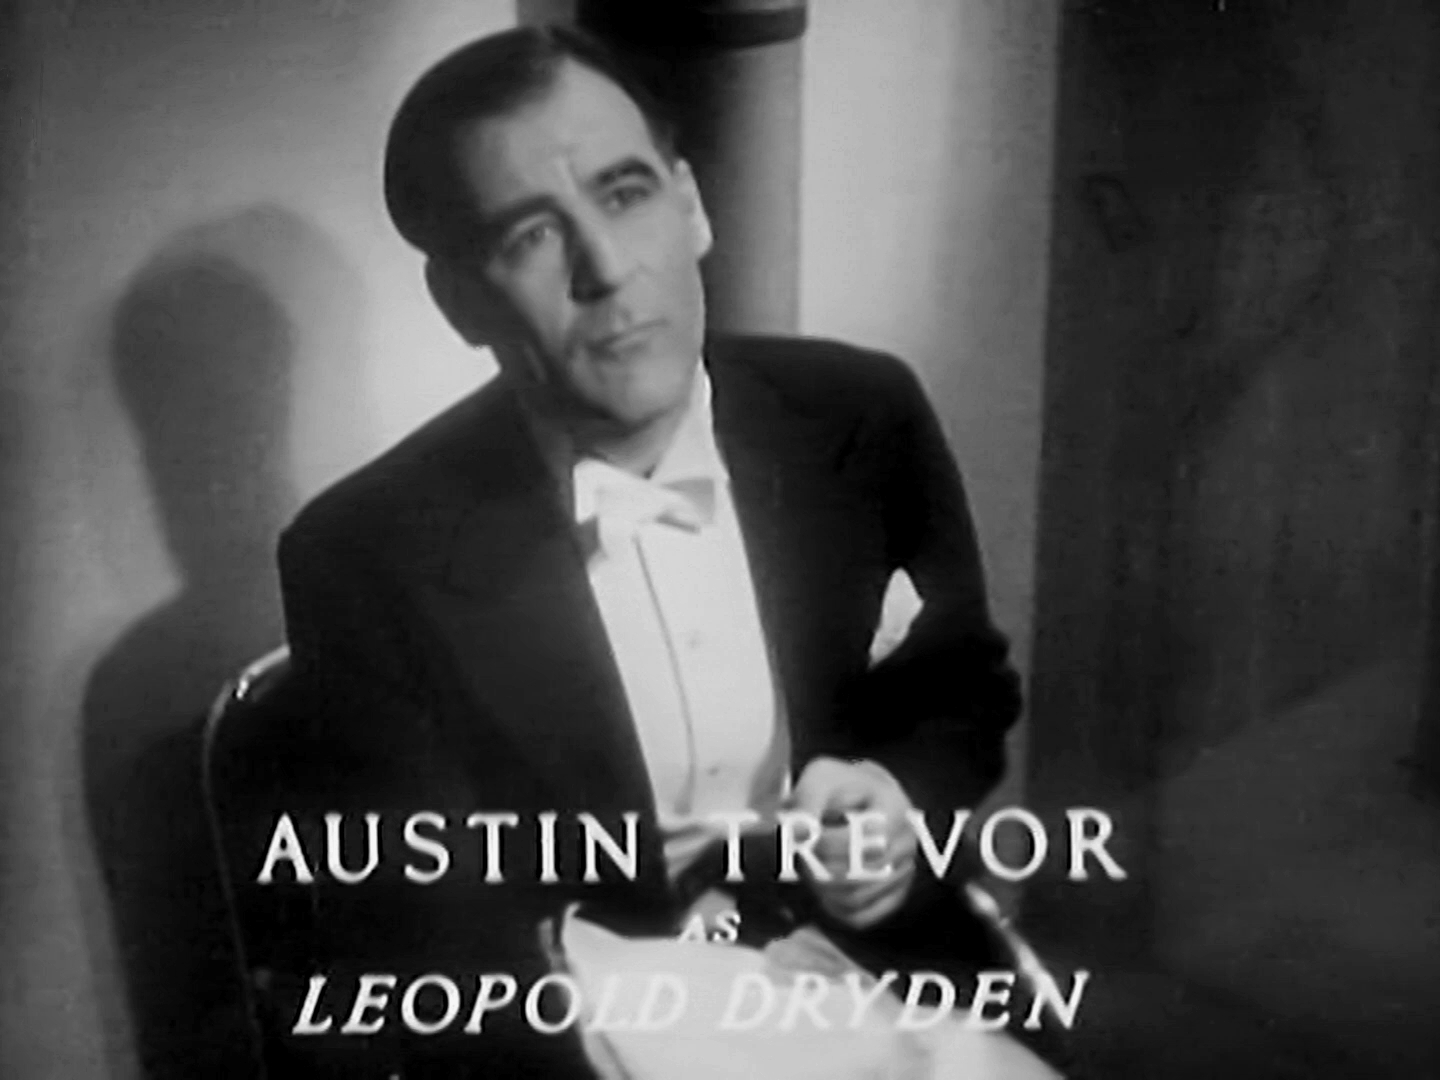 Main title from Death at Broadcasting House (1934) (5). Austin Trevor as Leopold Dryden